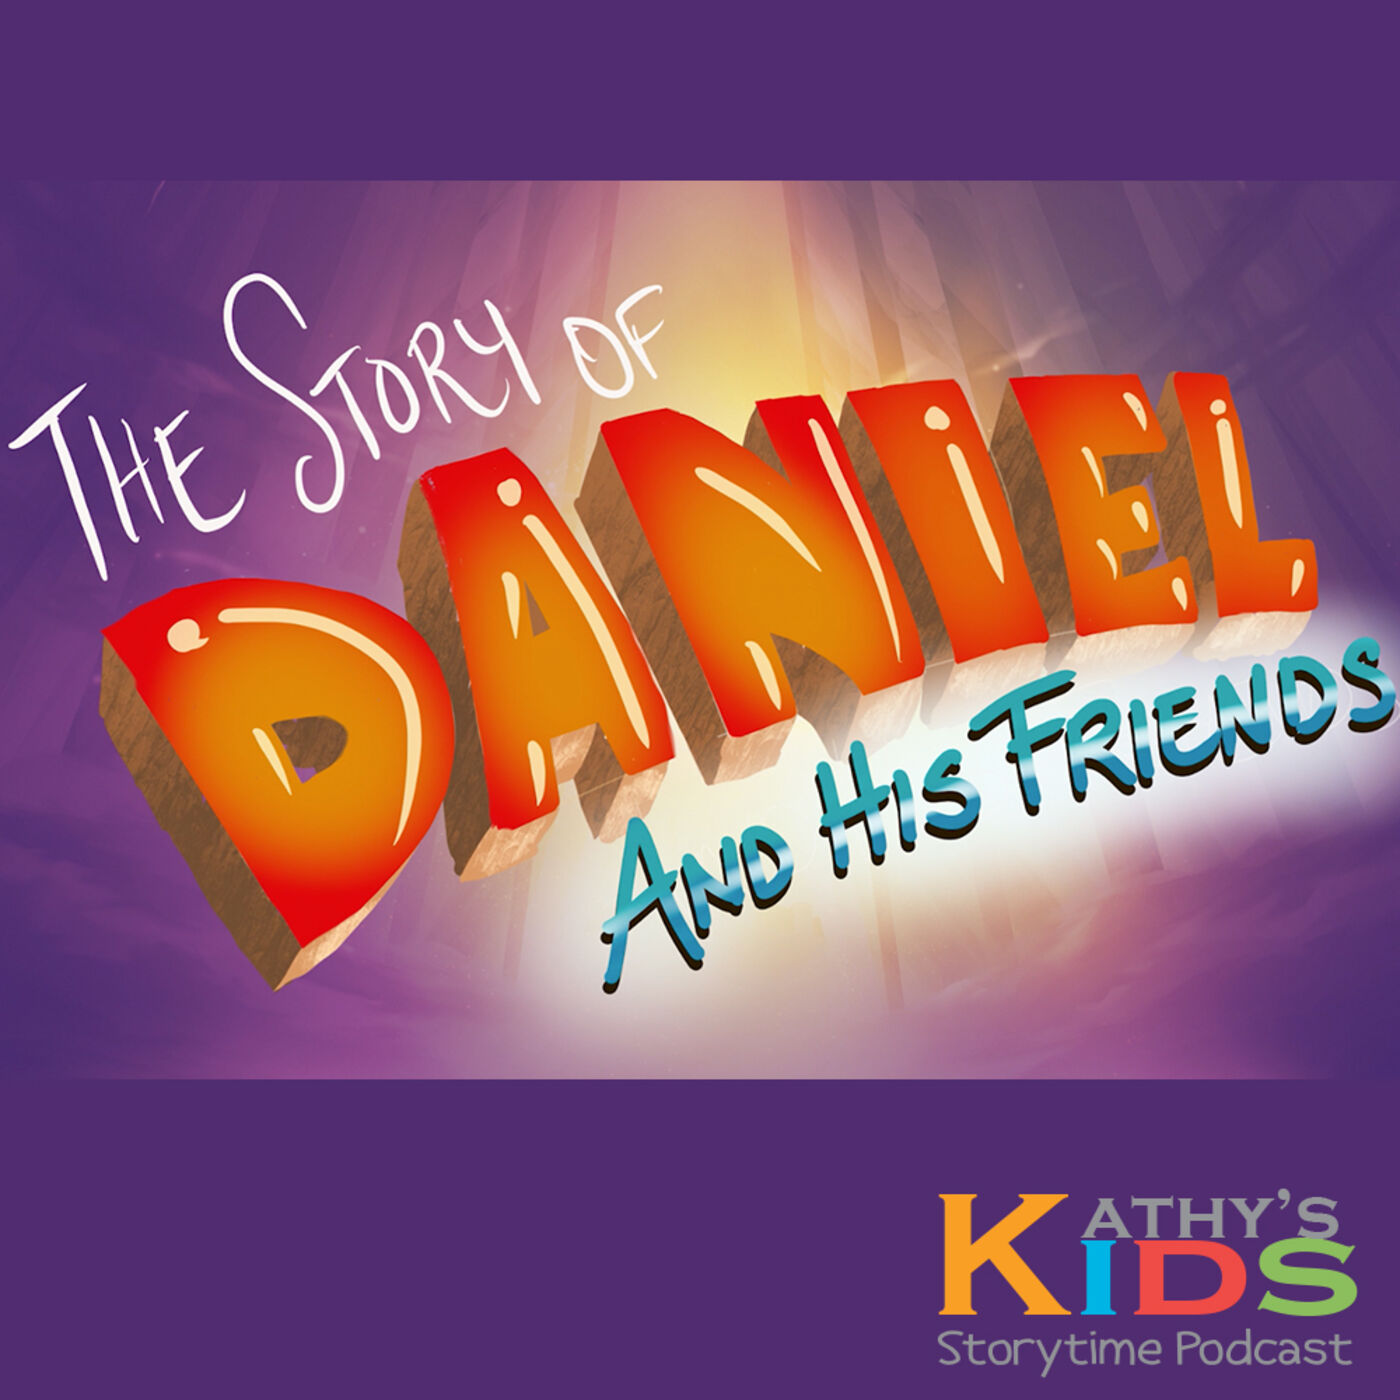 Nebuchadnezzar's Dream — The Story of Daniel and His Friends, Part 2